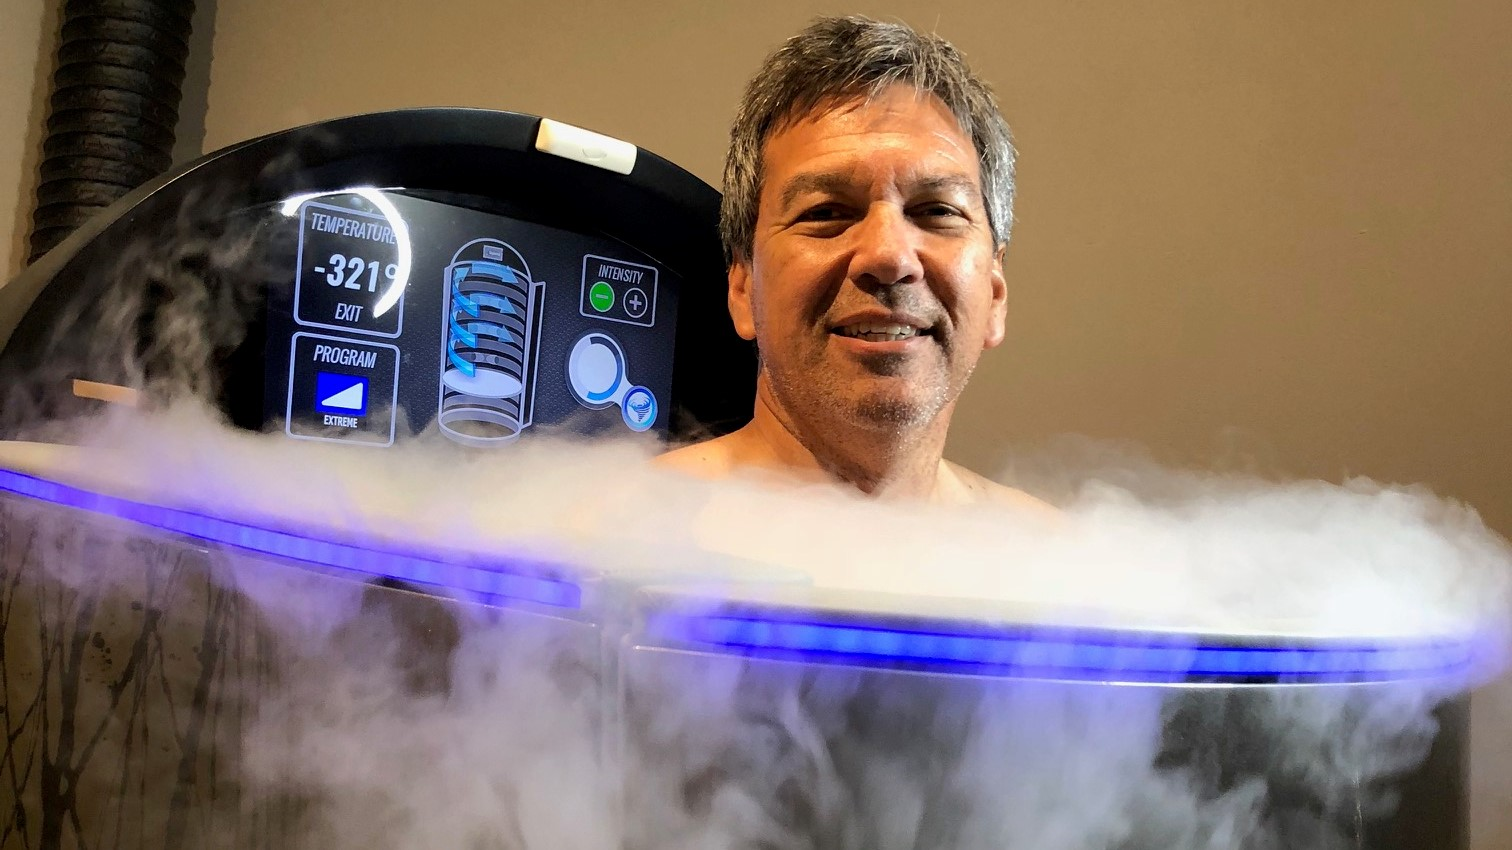 Cryotherapy spa